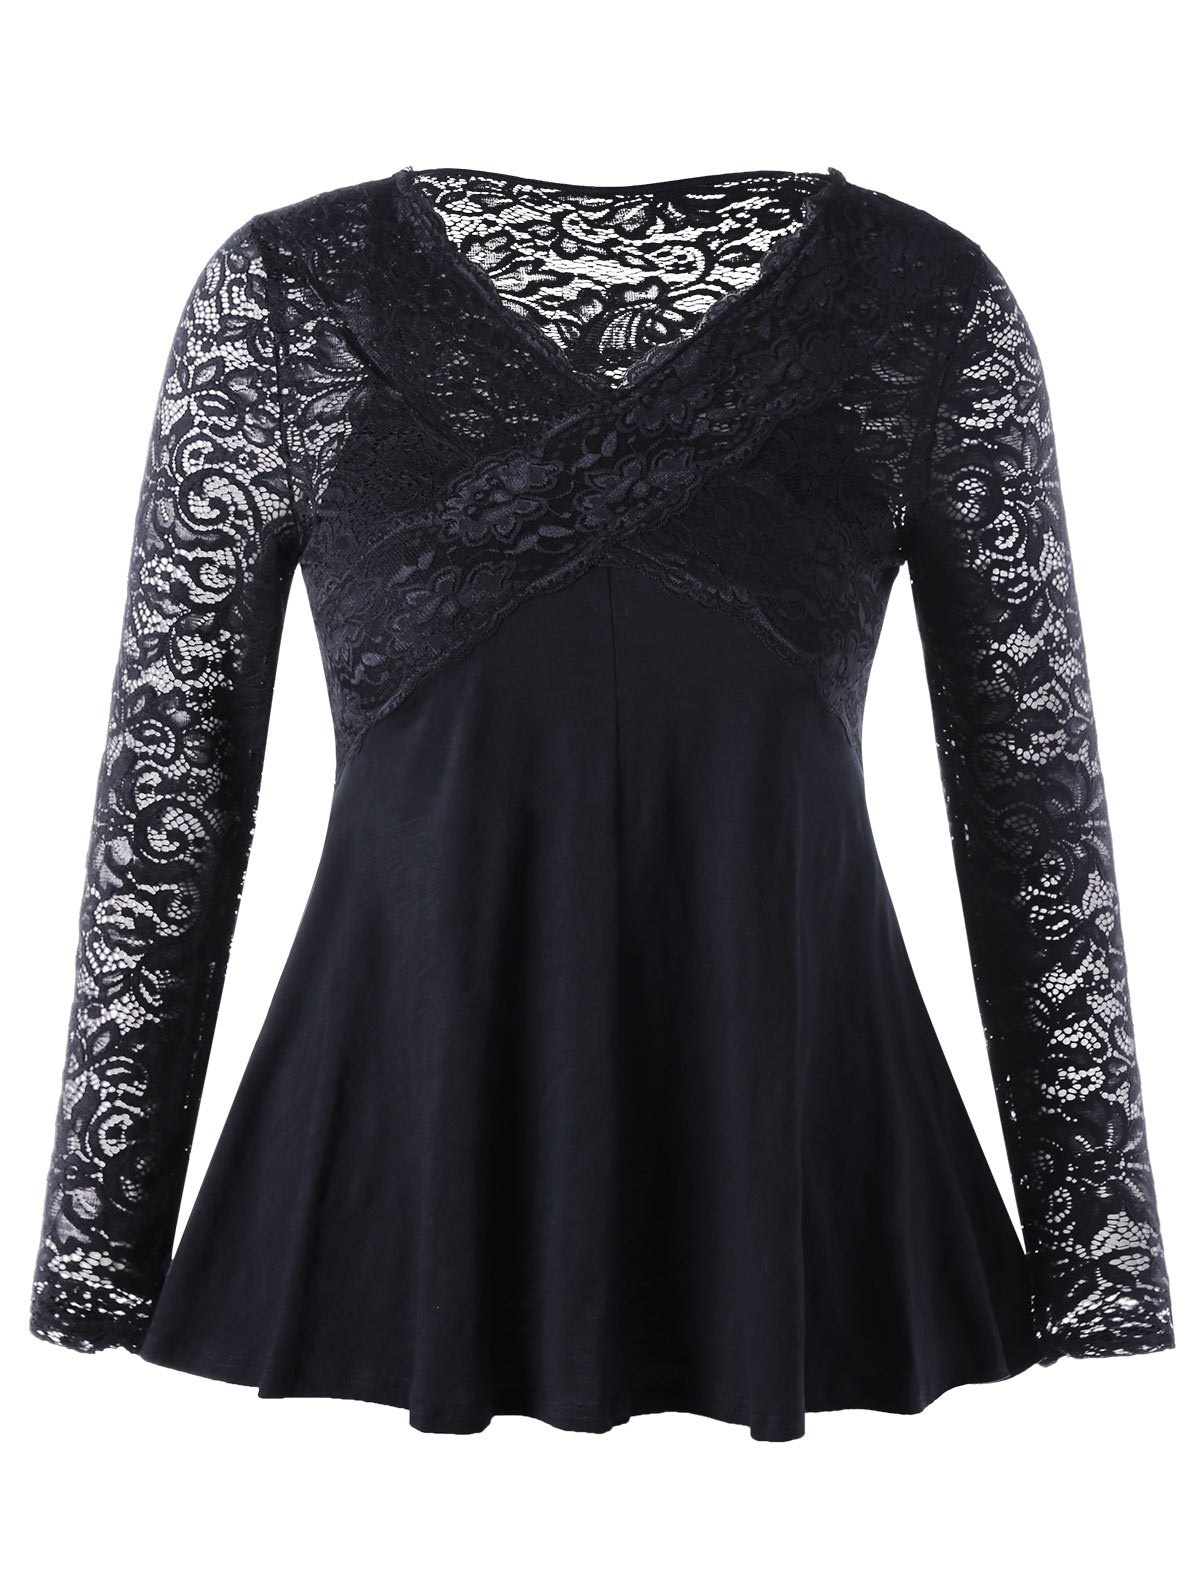 Lace Insert Empire Waist Plus Size TopWOMEN<br><br>Size: 4XL; Color: BLACK; Material: Polyester,Spandex; Shirt Length: Long; Sleeve Length: Full; Collar: V-Neck; Style: Fashion; Season: Fall,Spring; Pattern Type: Patchwork,Solid; Weight: 0.3500kg; Package Contents: 1 x Top;